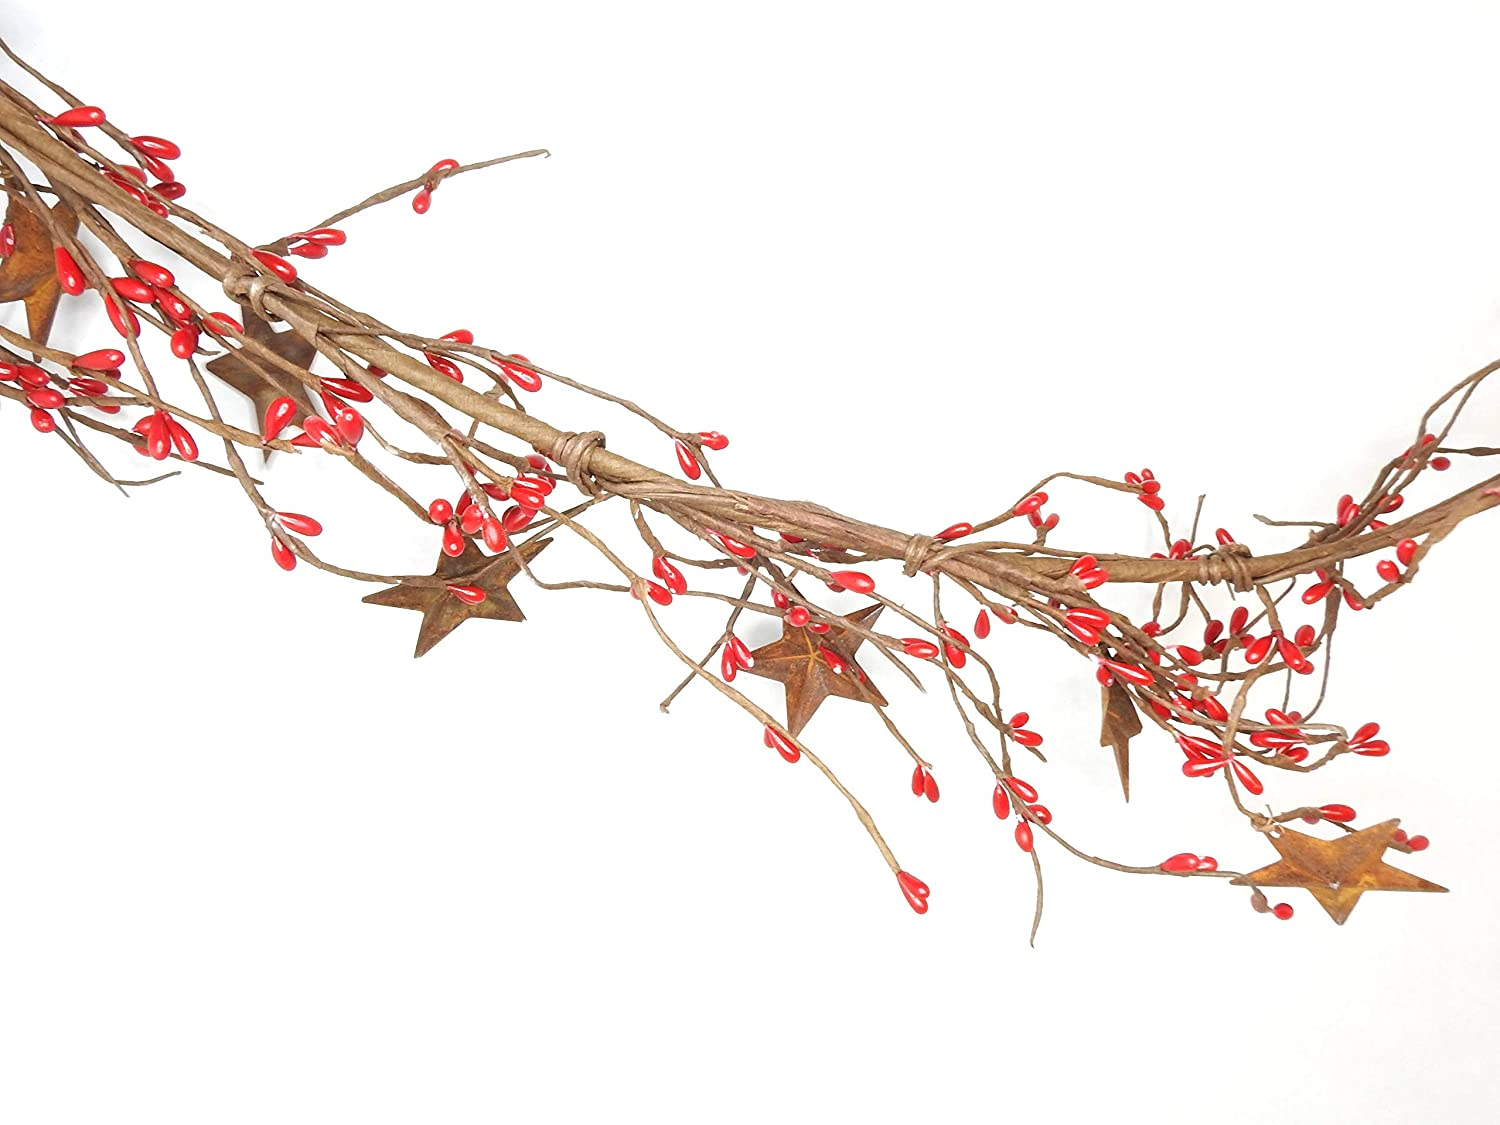 "Direct International Pip Berry Garland Burgundy Red with Rustic Barn Star 68"", Christmas Garland, Artificial Twig Primitive Country Home Decor Farmhouse Pip Berries"